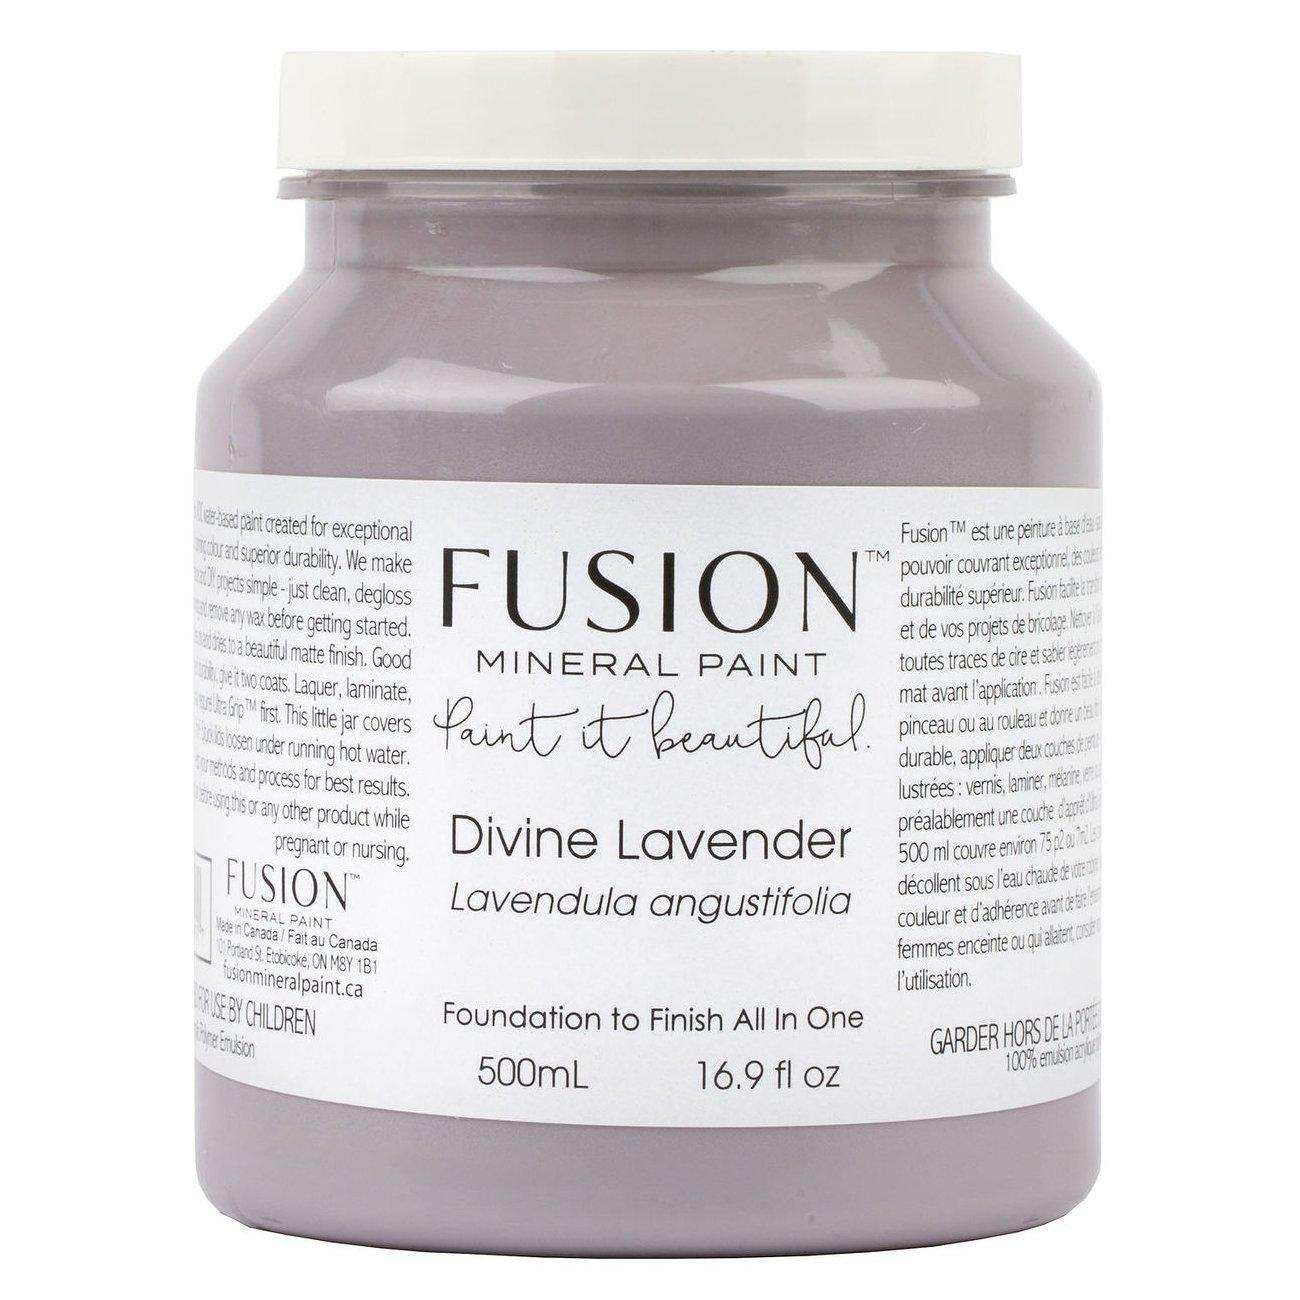 Divine Lavender Fusion Mineral Paint Pint - 500mL Bottle @ The Painted Heirloom